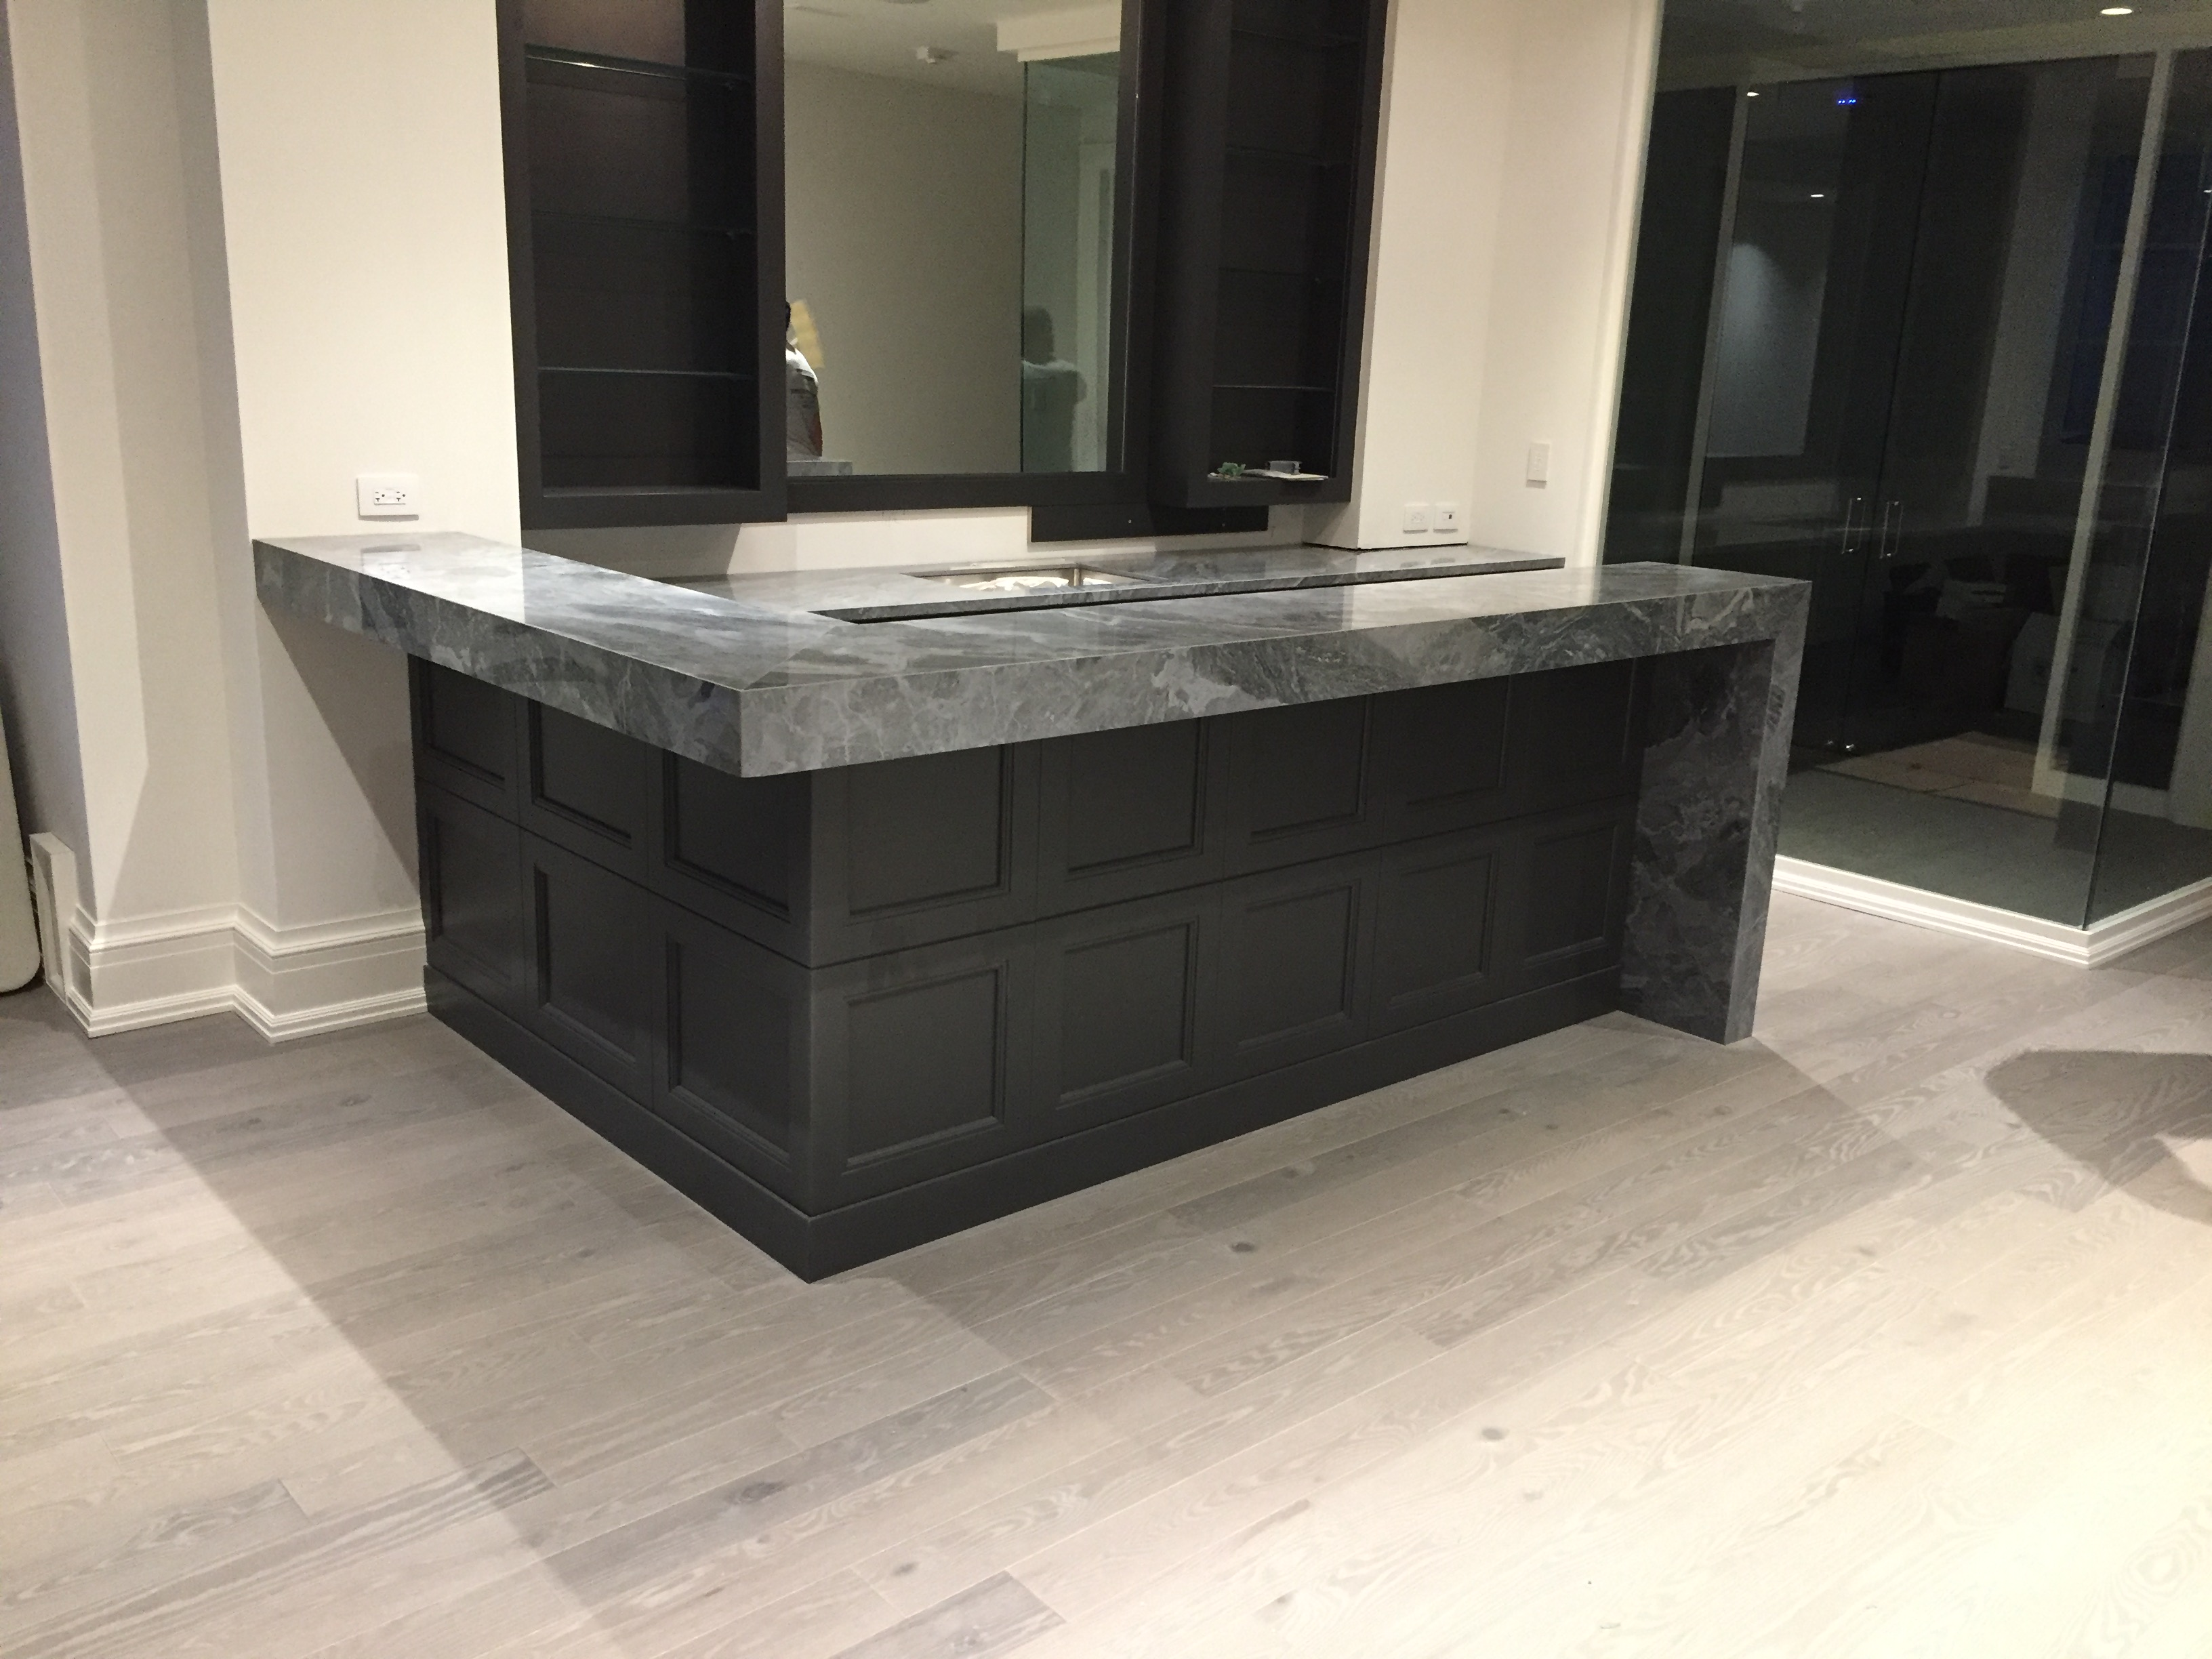 marble countertops in kitchen